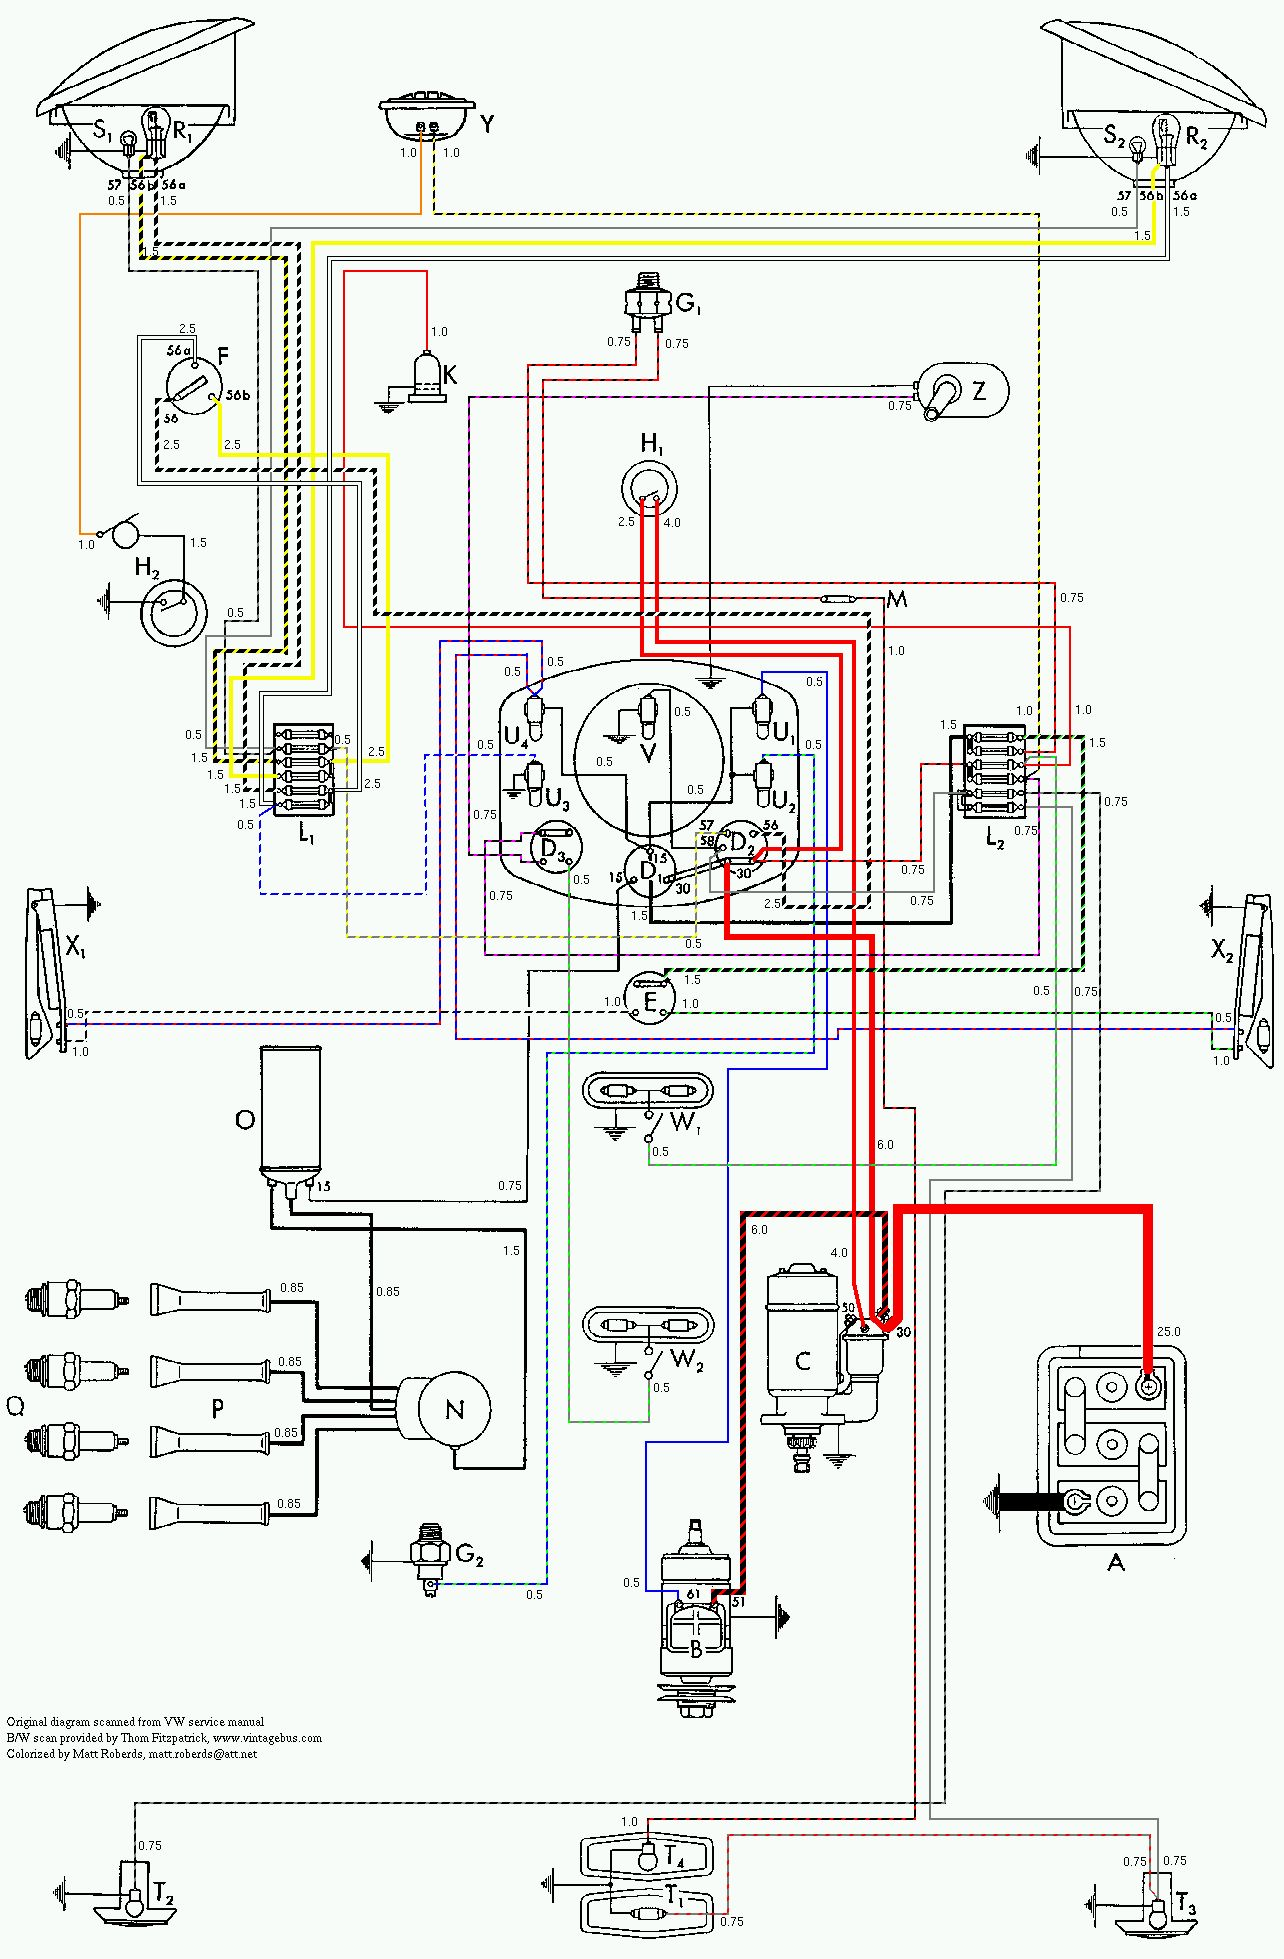 Bus Color on 1950 chevrolet wiring diagram